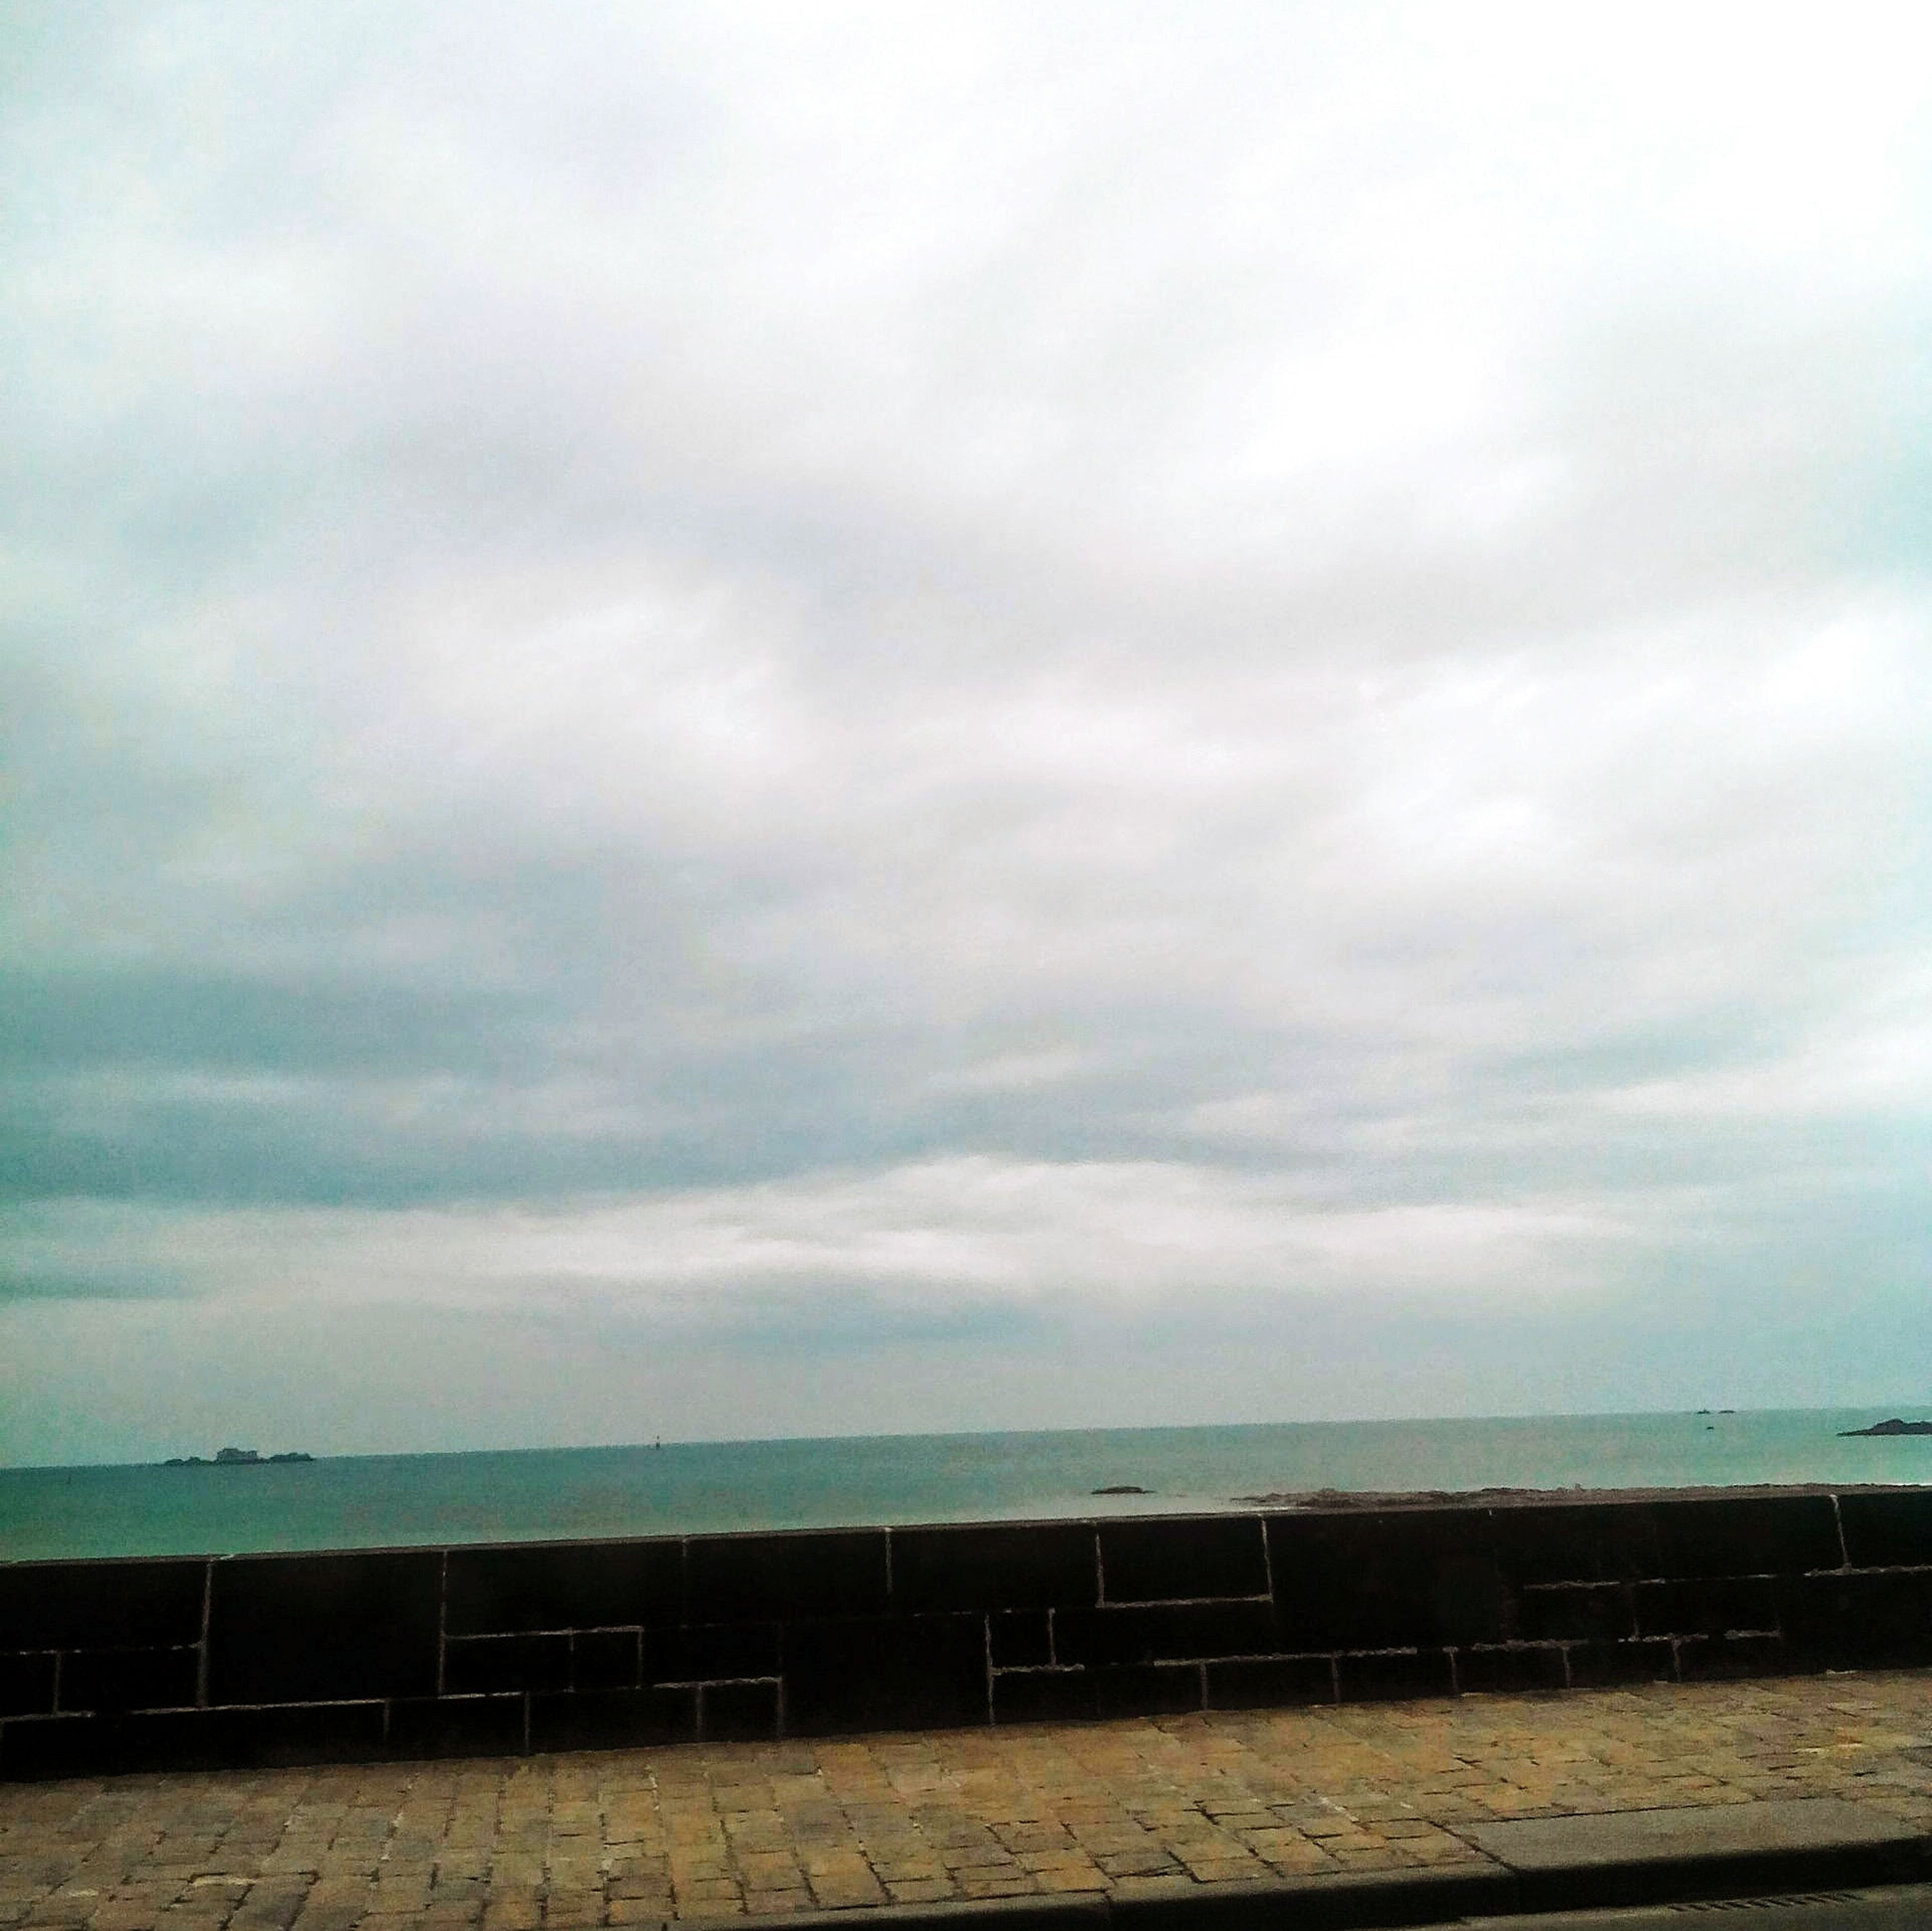 sea, sky, horizon over water, water, cloud - sky, tranquil scene, tranquility, cloudy, beach, scenics, beauty in nature, cloud, nature, overcast, shore, weather, railing, outdoors, built structure, day